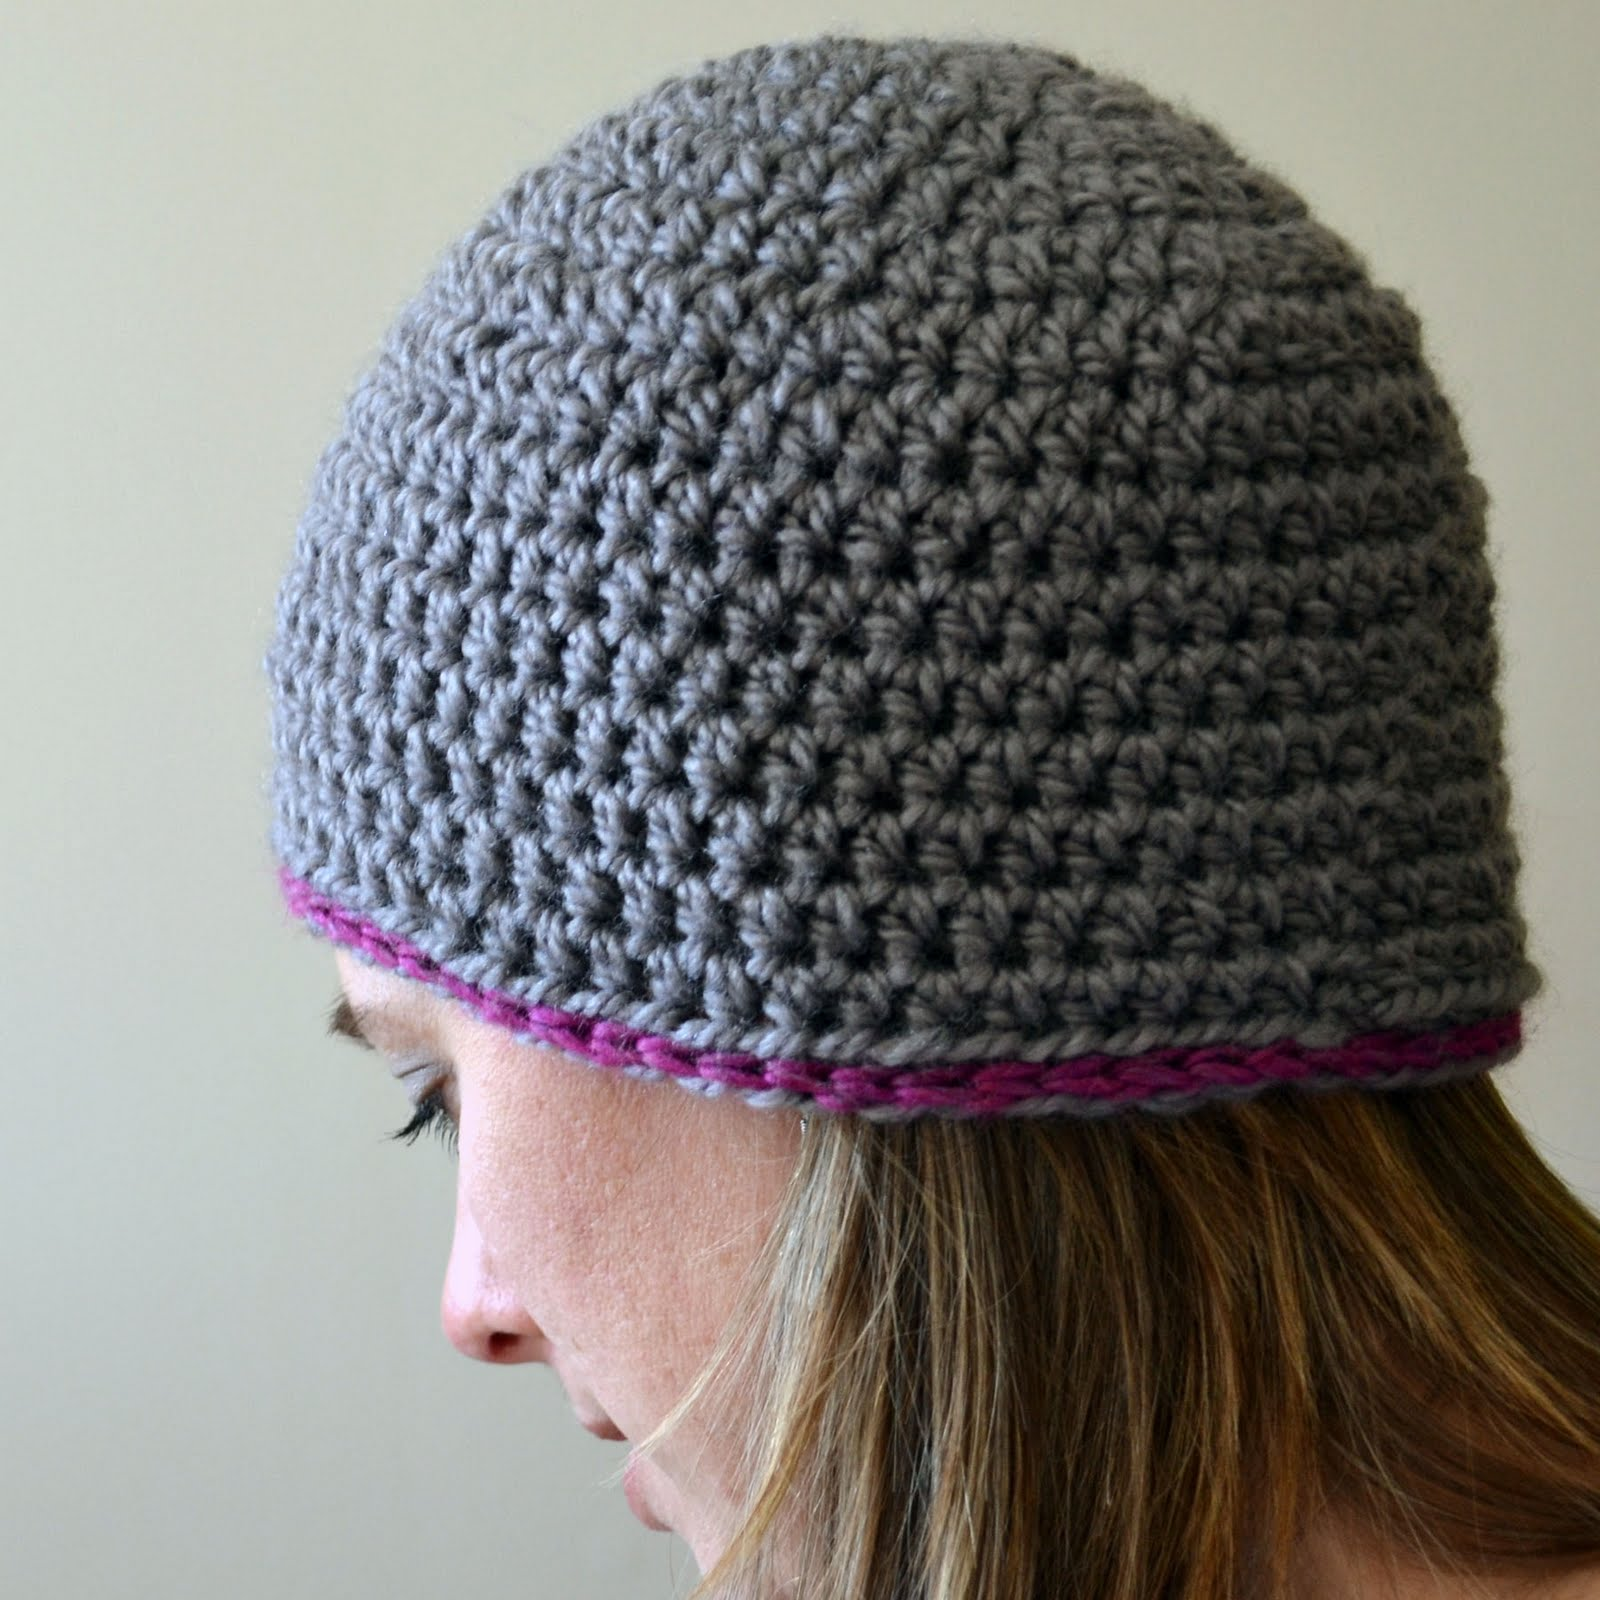 Free Crochet Hat Patterns : Crochet in Color: Chunky Beanie Pattern